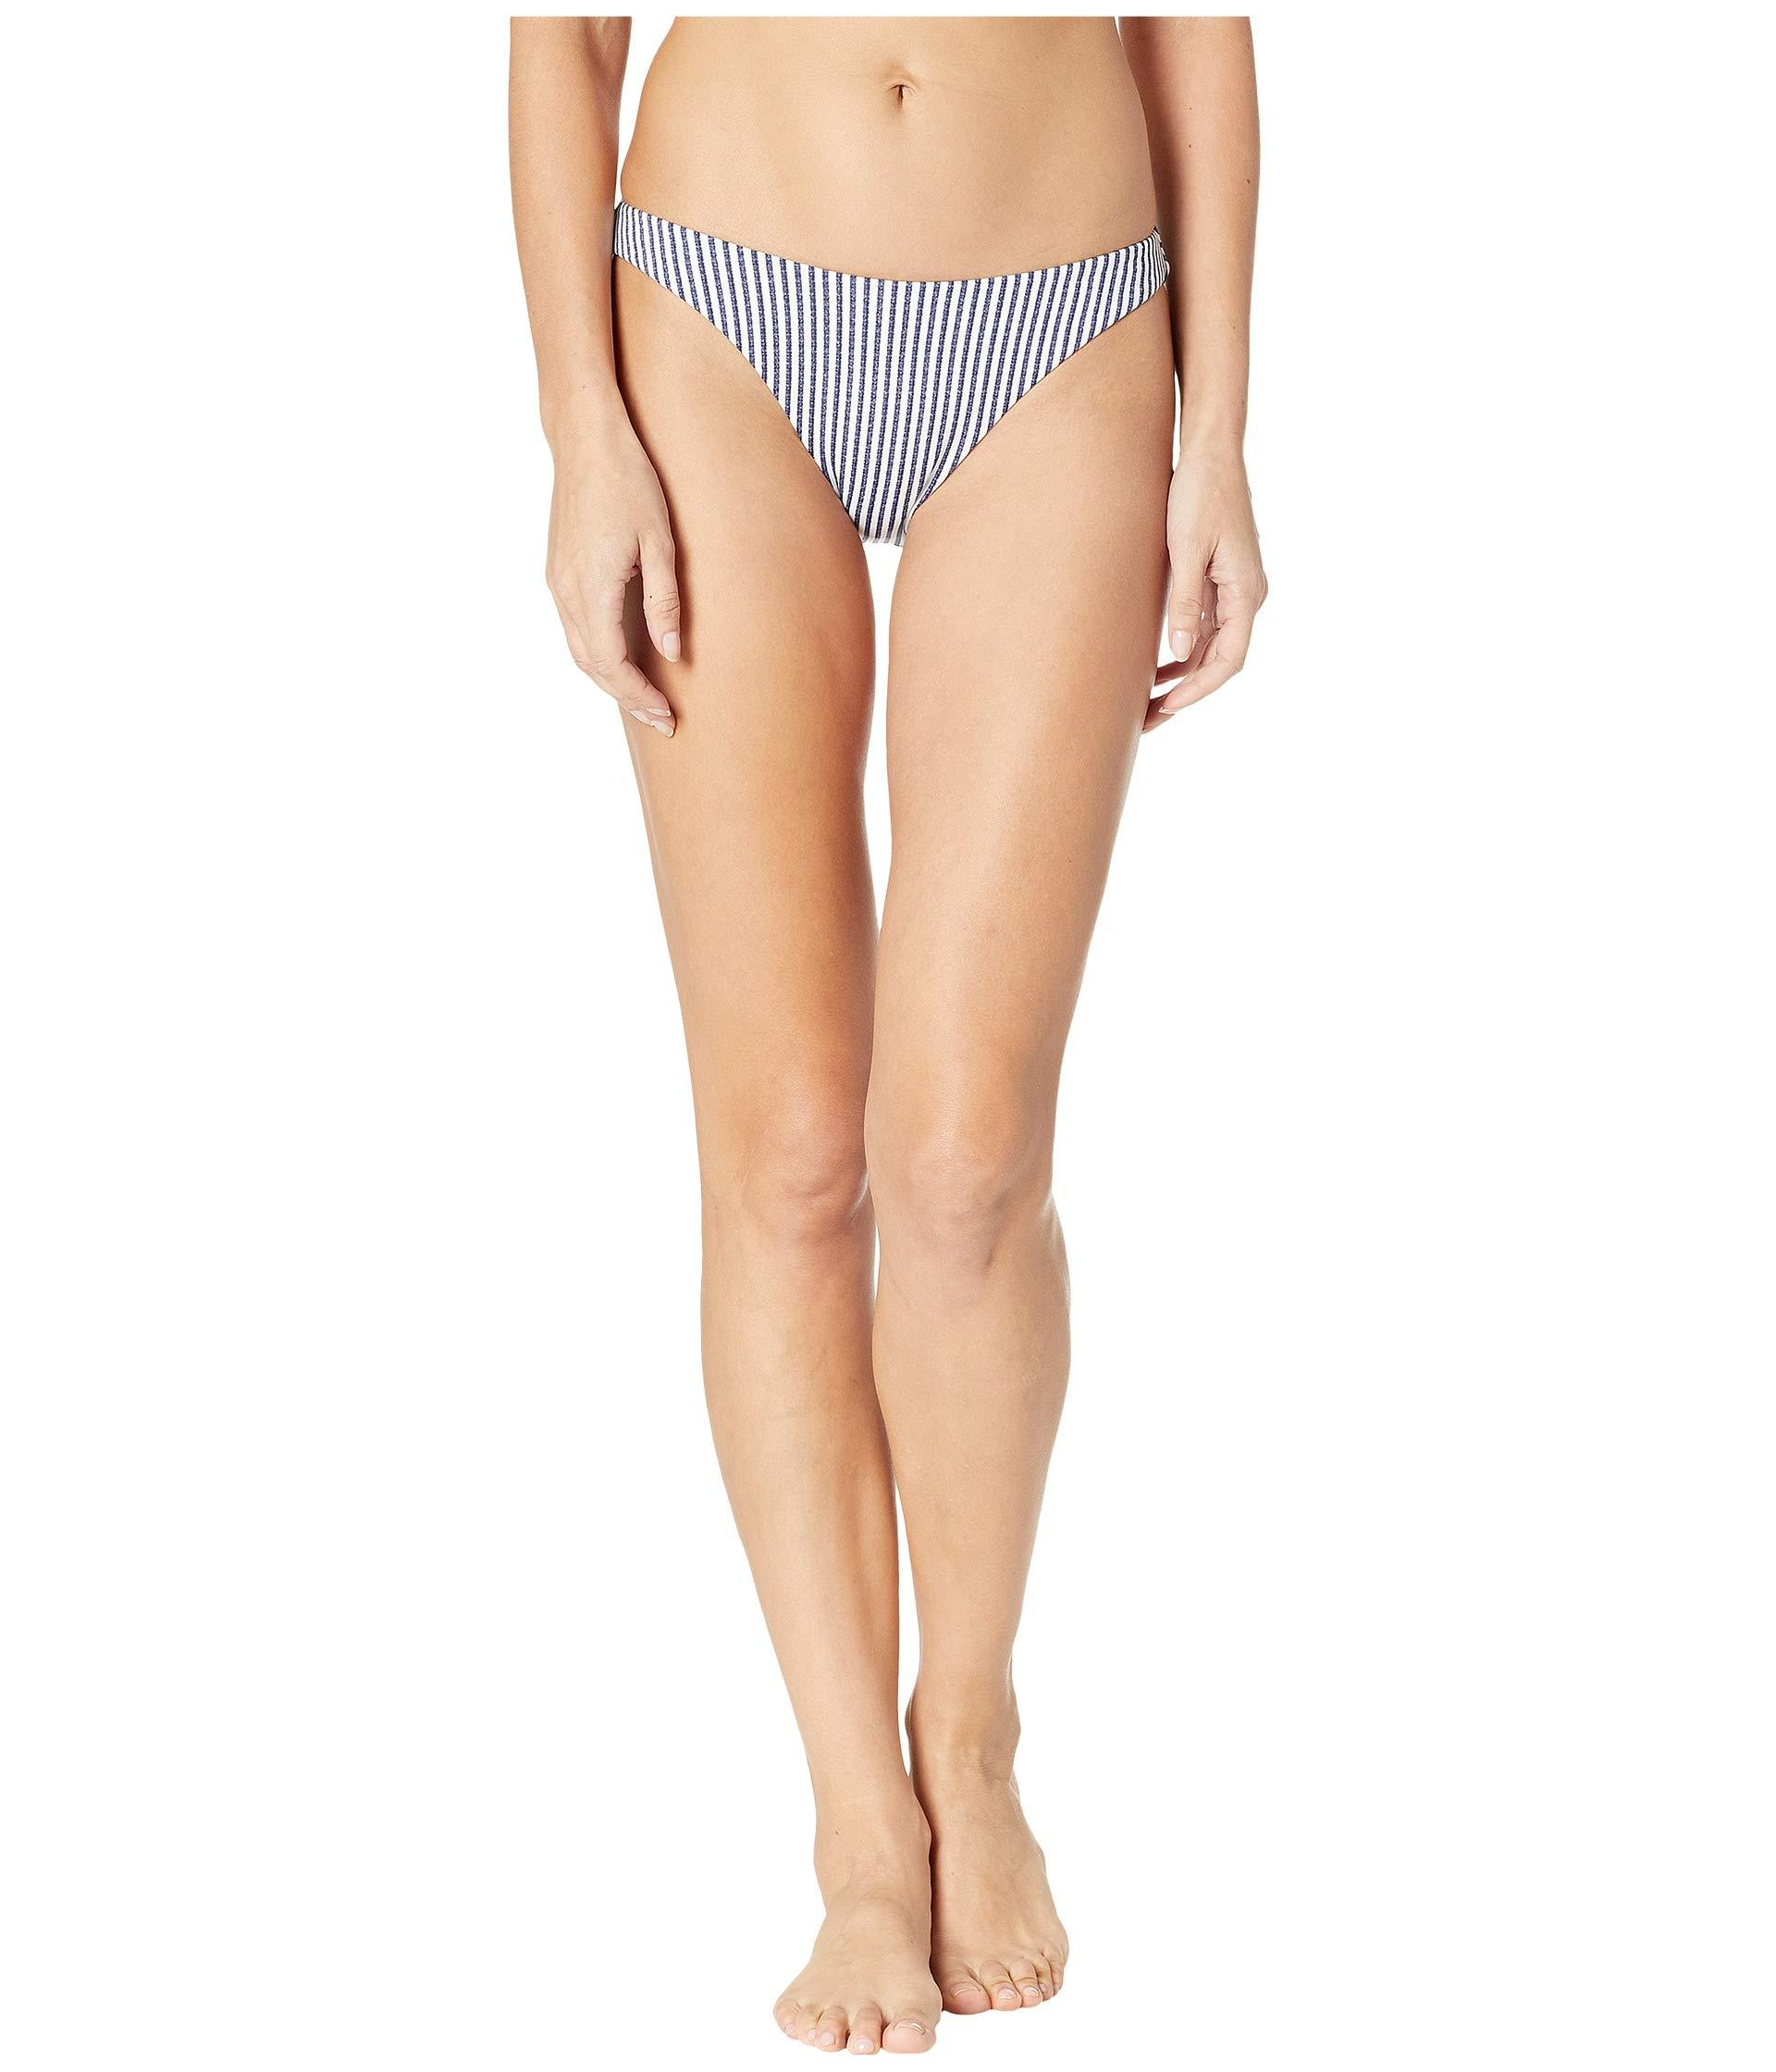 b9cc1ad179a Roxy. Women's Blue Printed Softly Love Reversible Full Swimsuit Bottoms